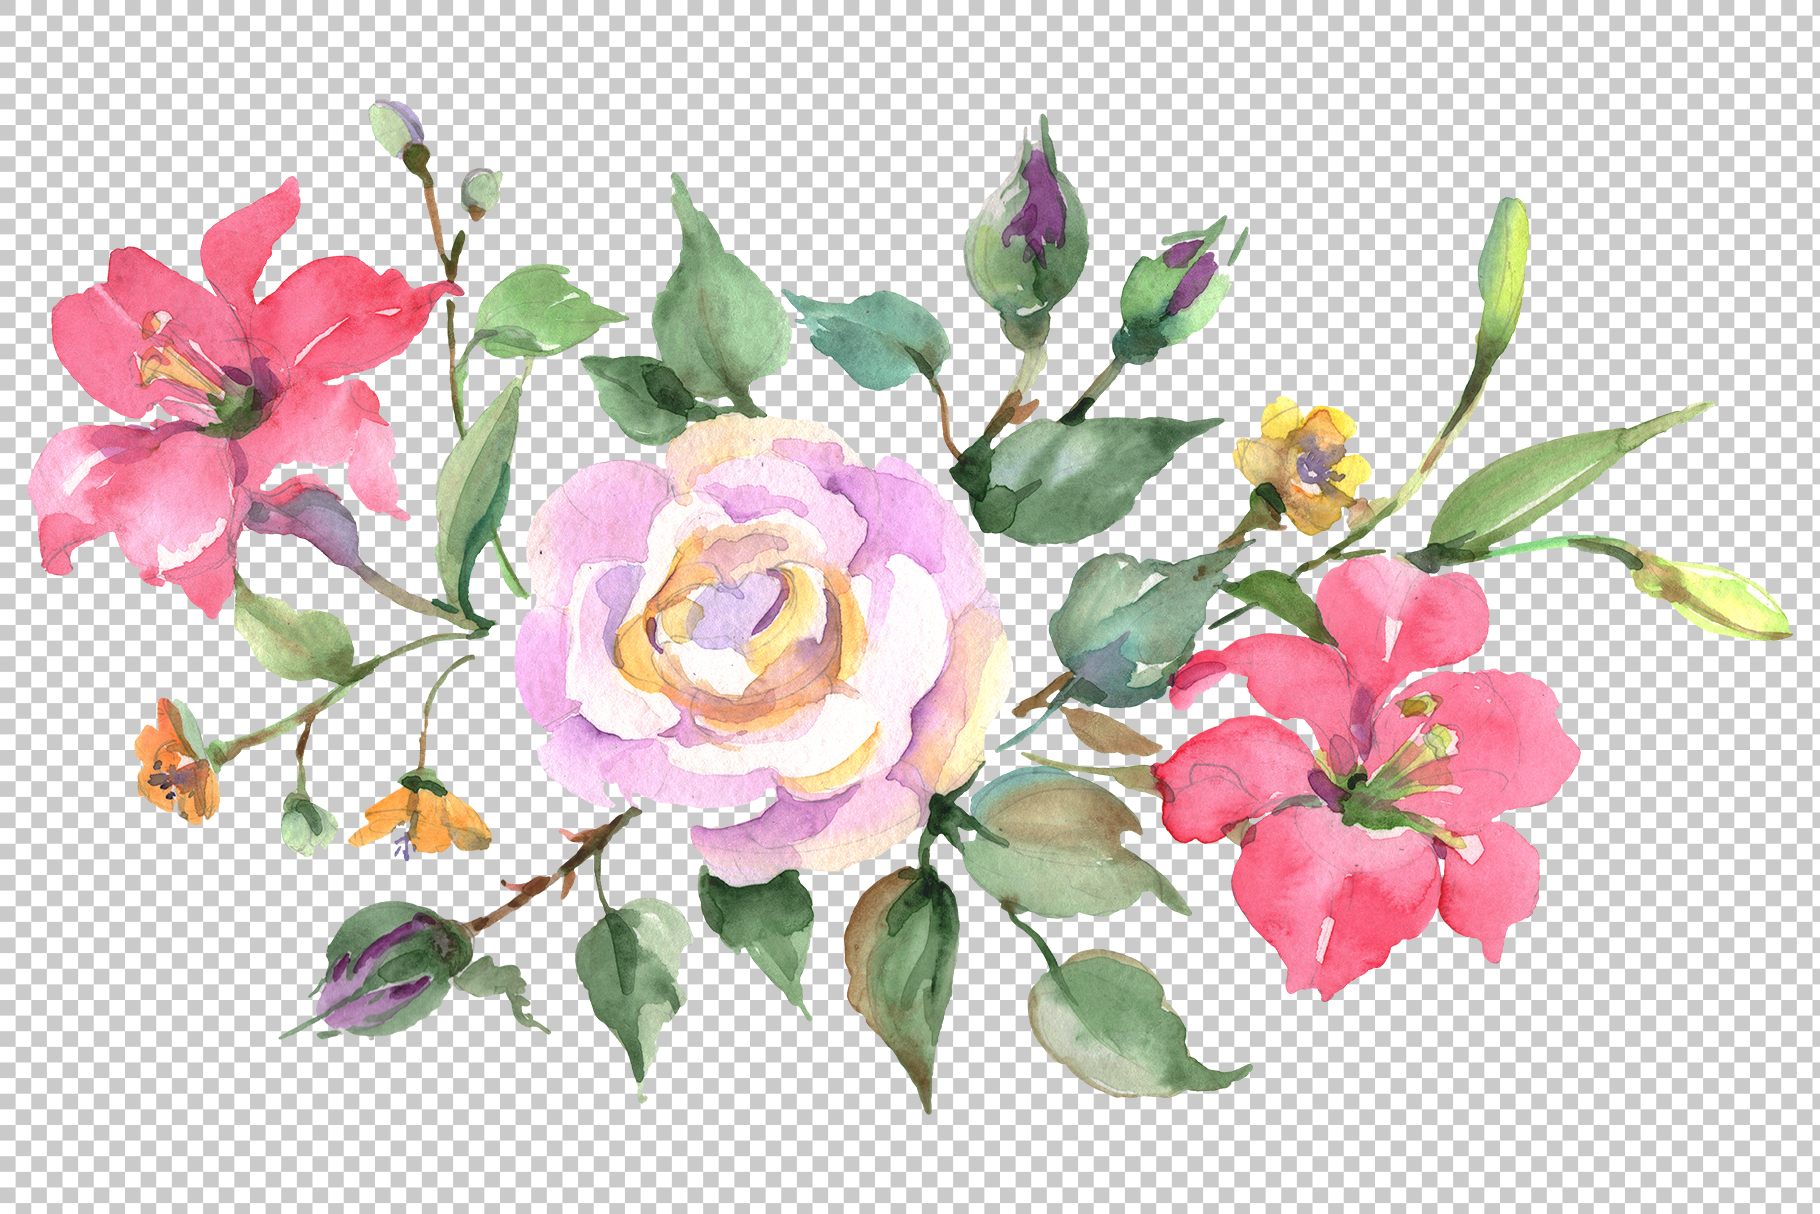 Bouquet with pink rose Watercolor png example image 2